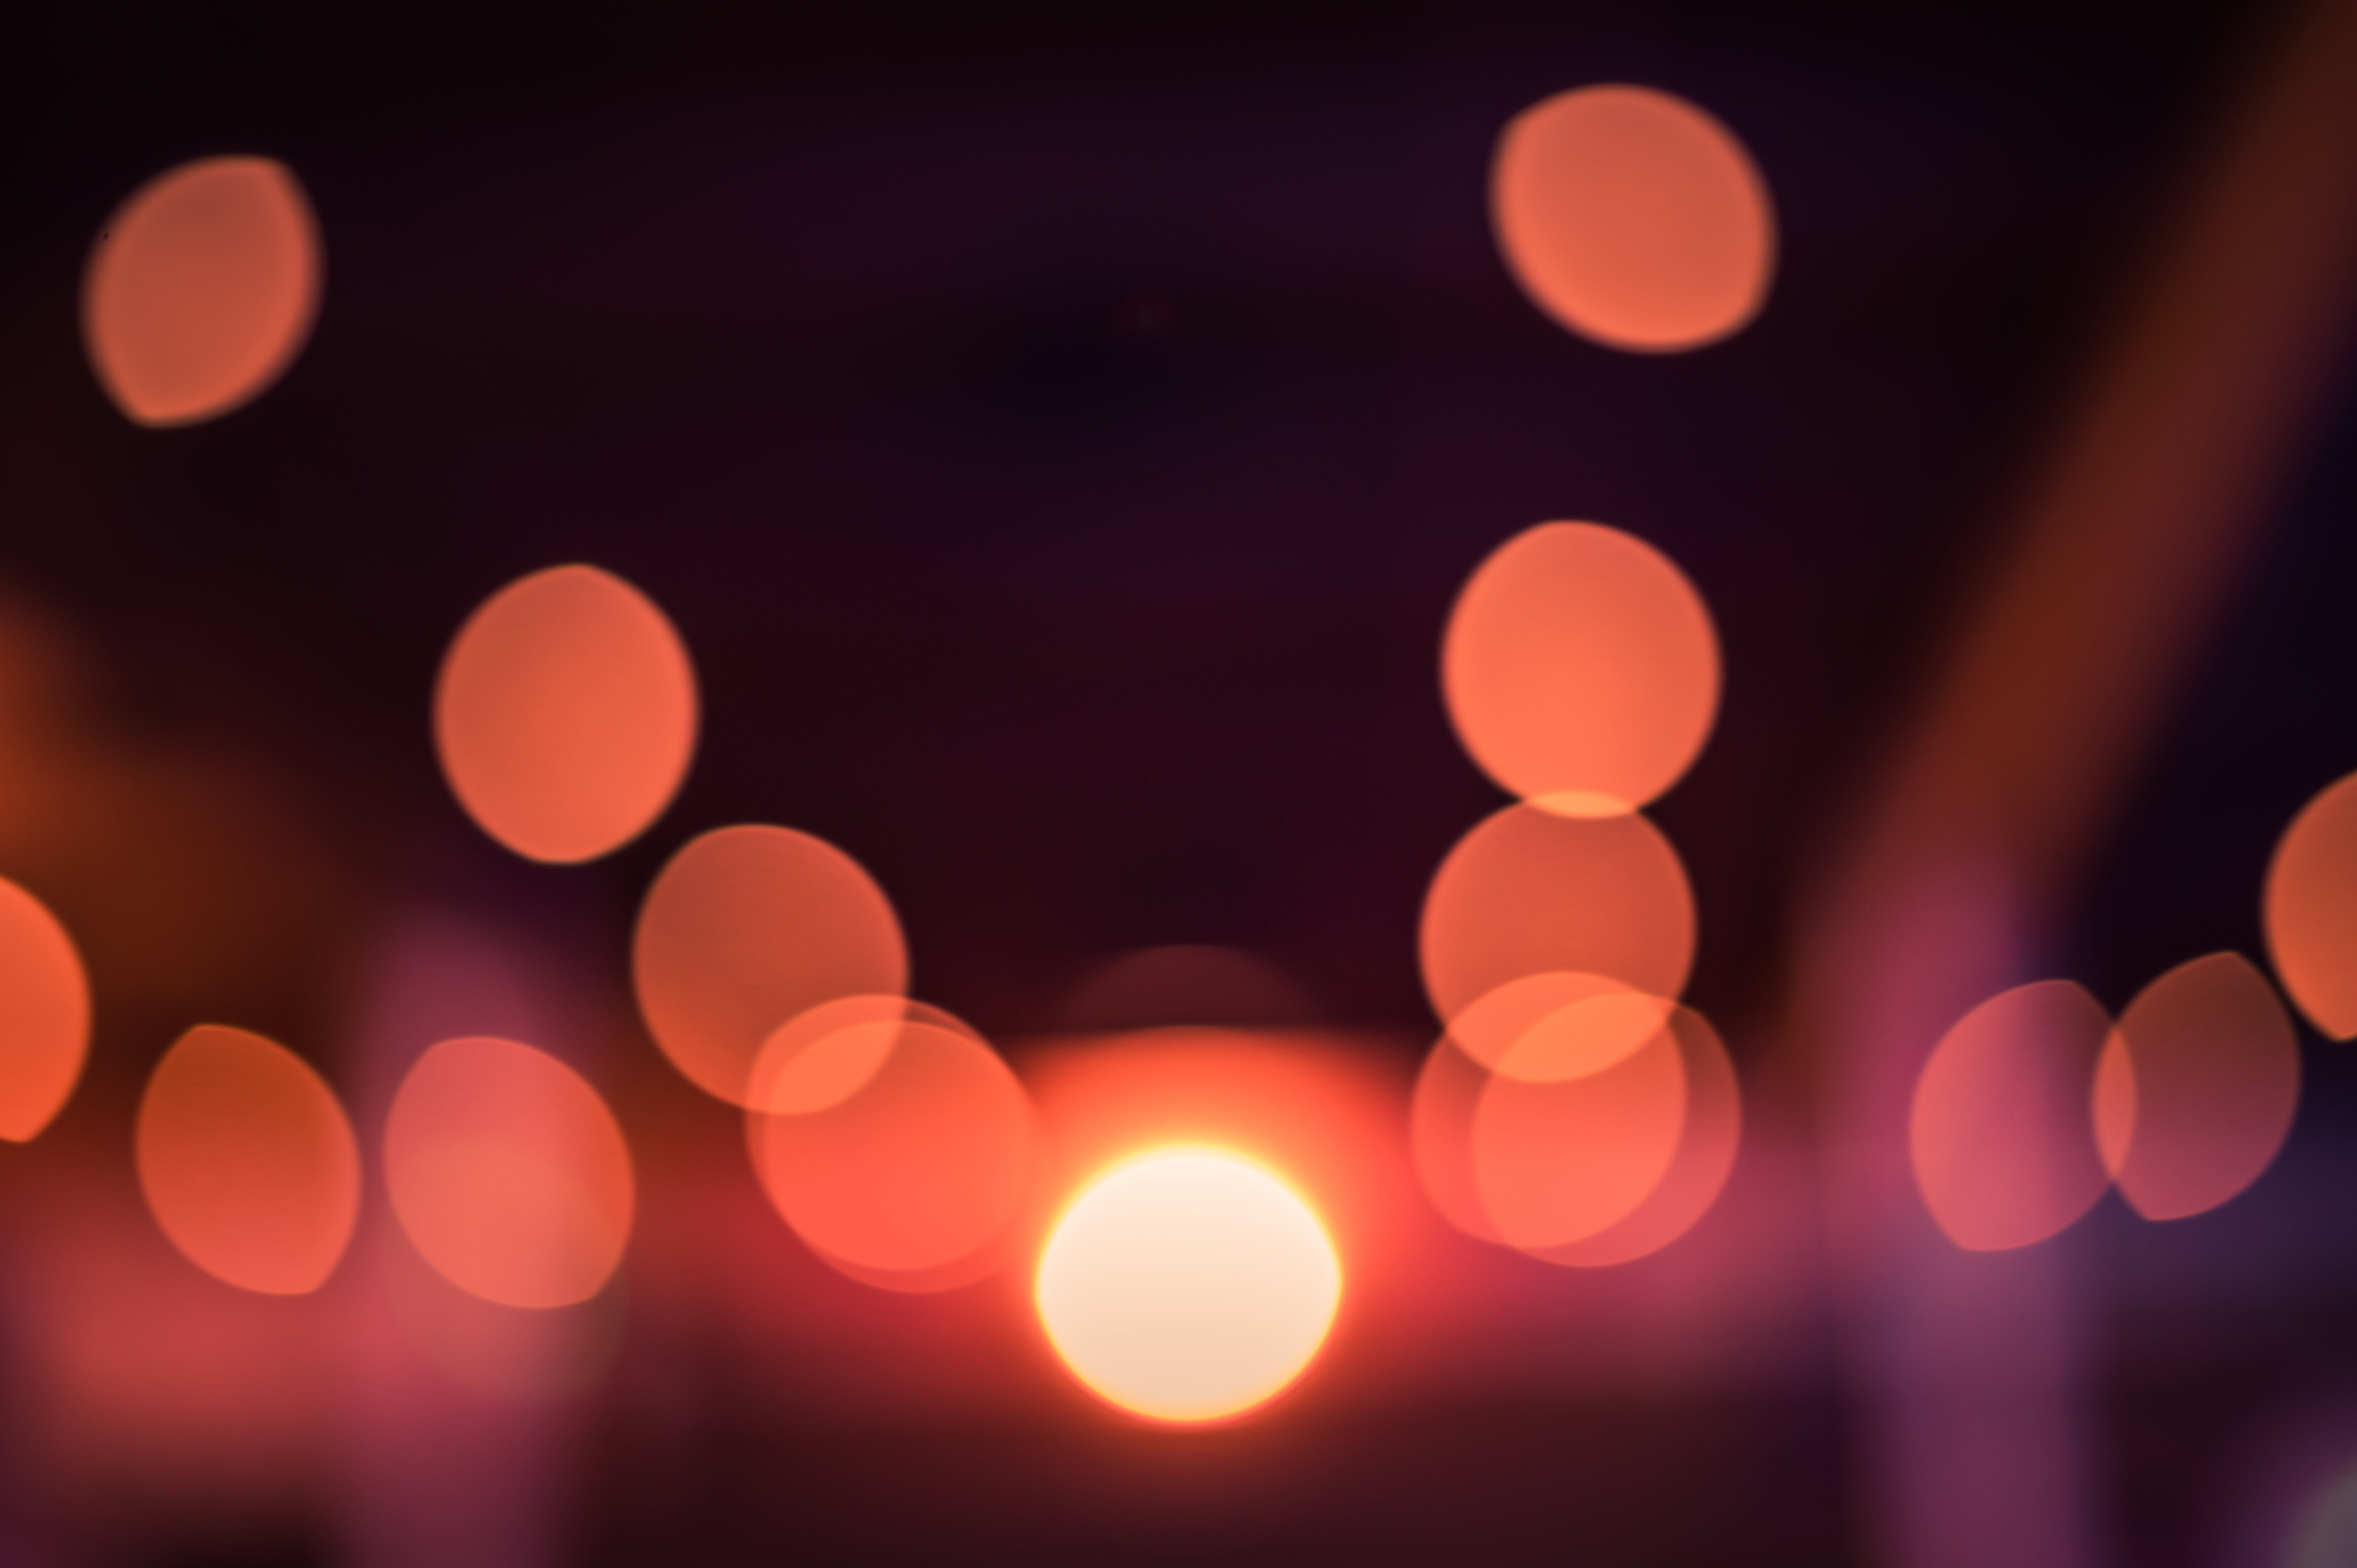 View of Bokeh Photography